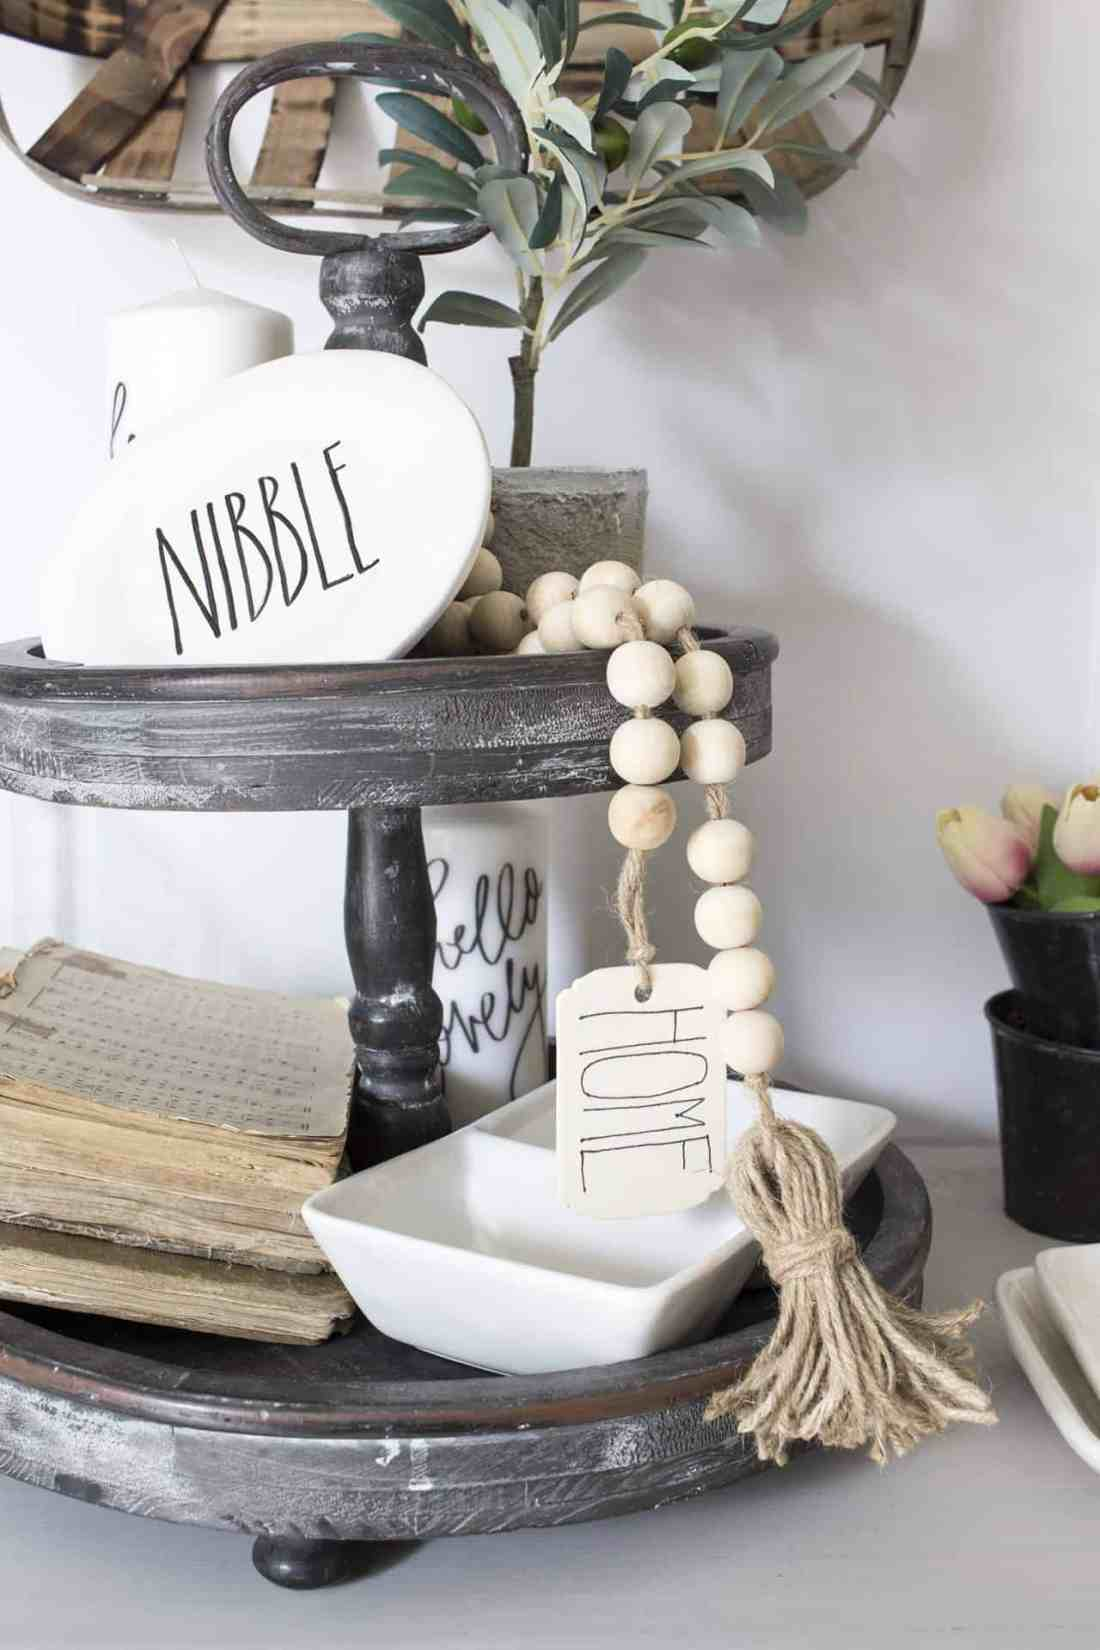 Make your own DIY wood bead garland with tassles and tag for your boho or farmhouse decorated home! The project only takes about 15 minutes!